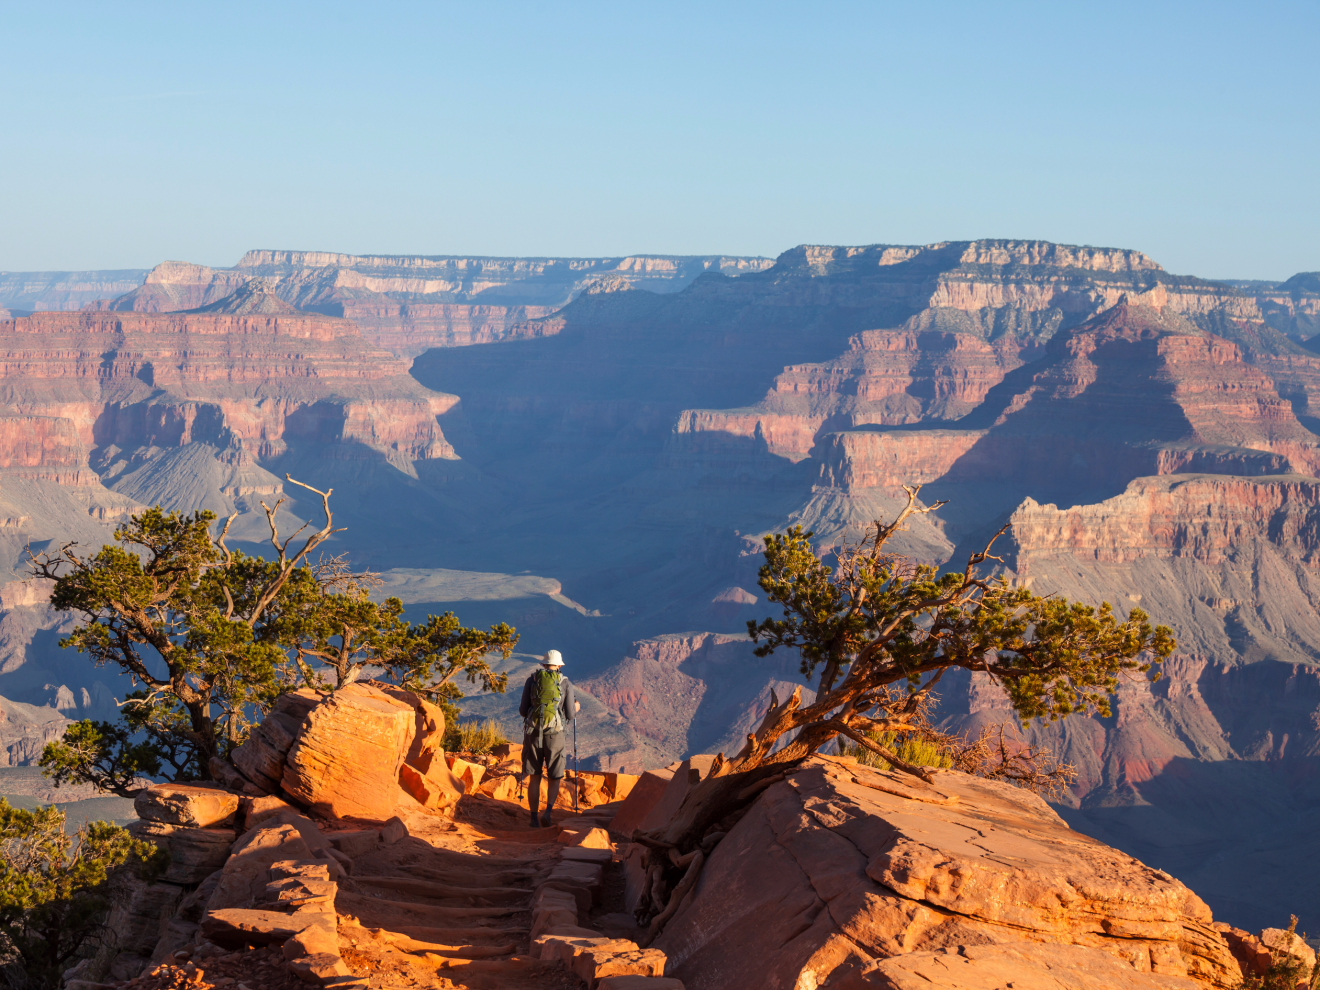 The Grand Canyon was listed as one of the 11 most endangered historic places in the US by the National Trust for Historic Preservation. It earned a spot on the list due to increased development project there, which range from uranium mining to tourist resorts. These could lead to the destruction of significant portions of the Grand Canyon and its main water source, the Colorado River.